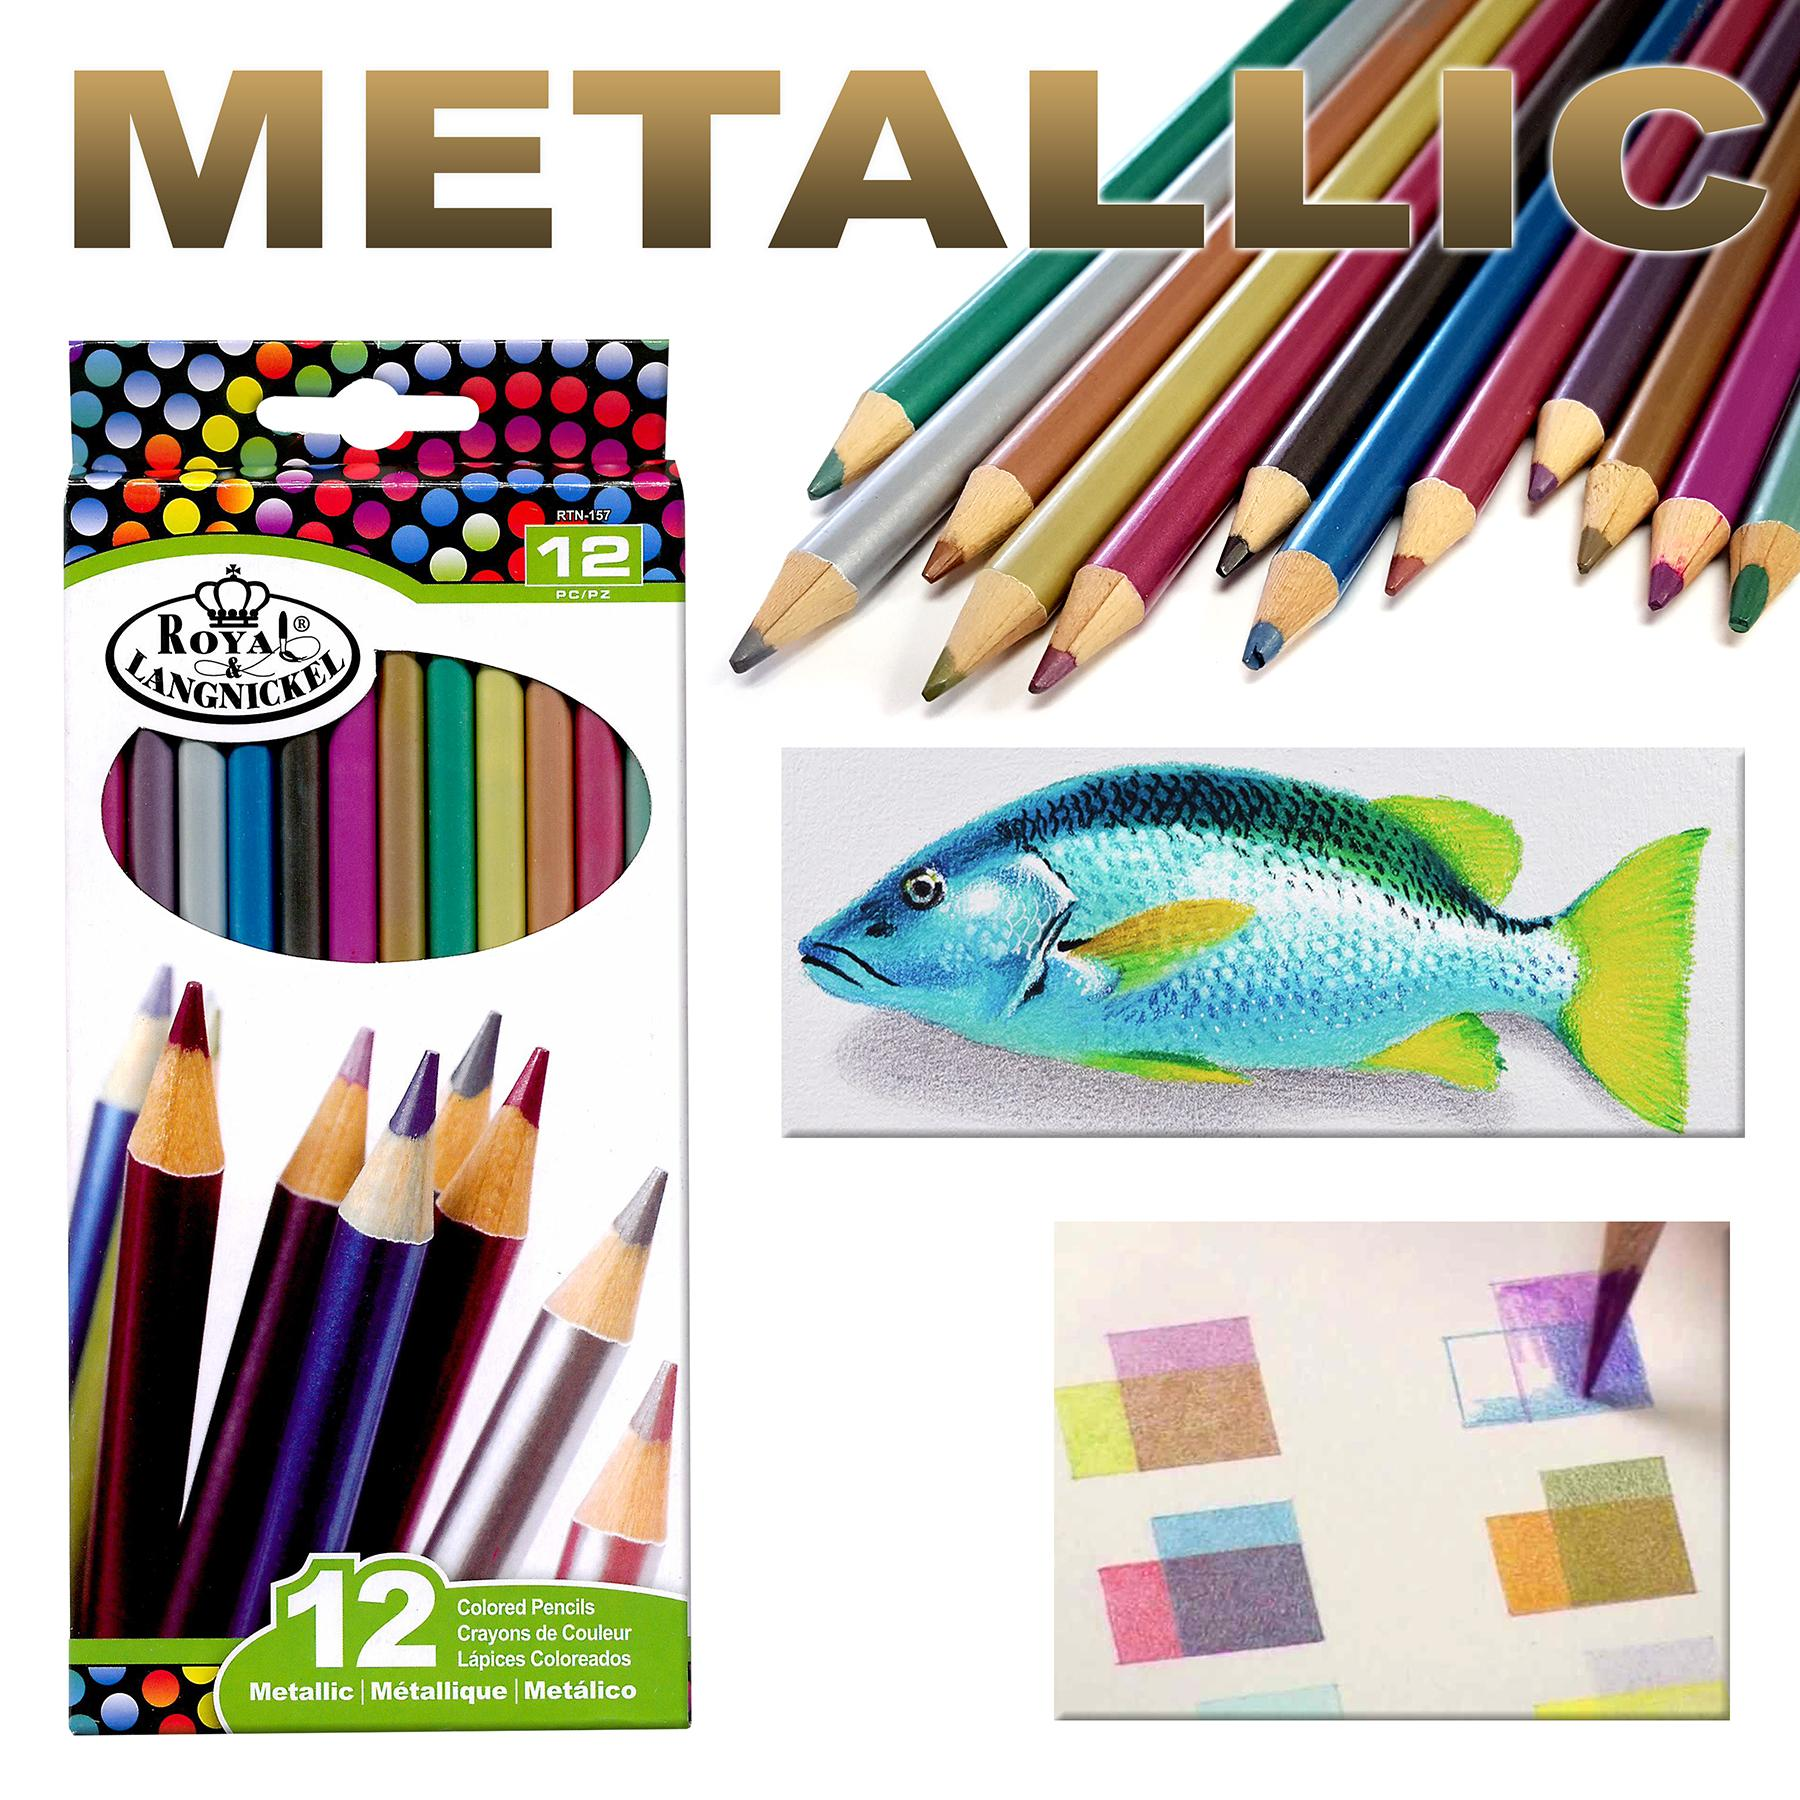 Royal Langnickel Metallic Colored Pencils, 12 Count